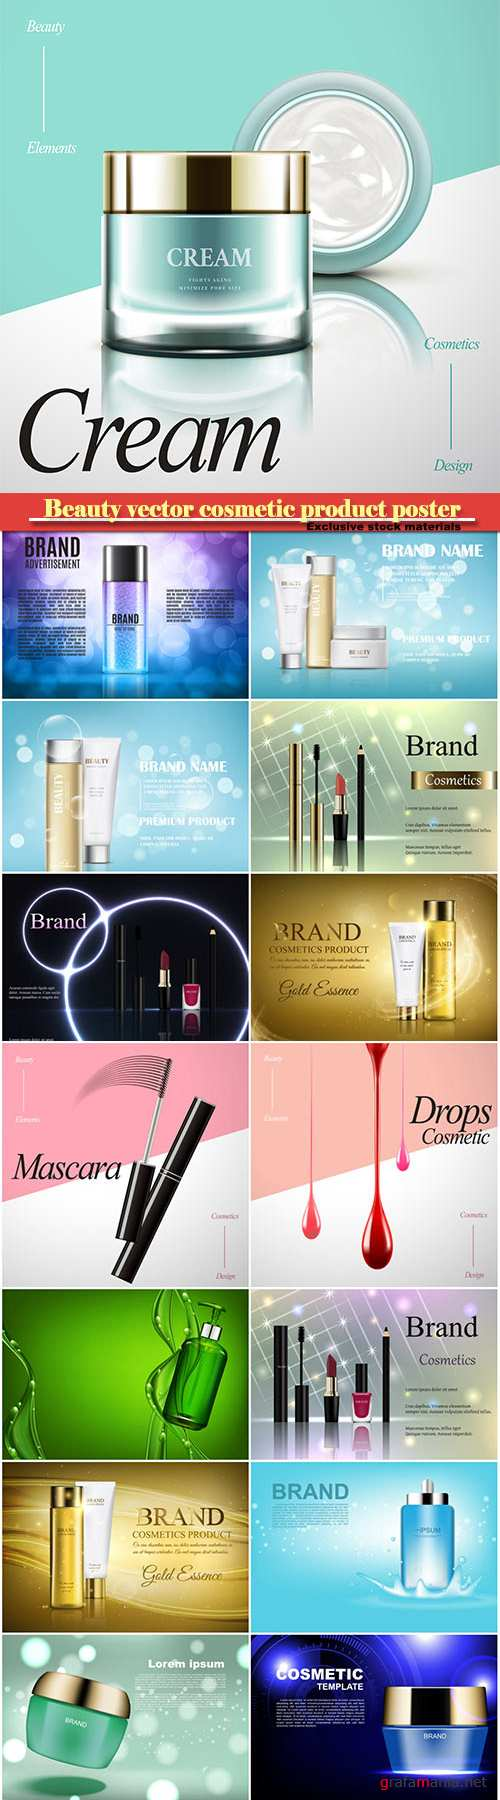 Beauty vector cosmetic product poster # 22